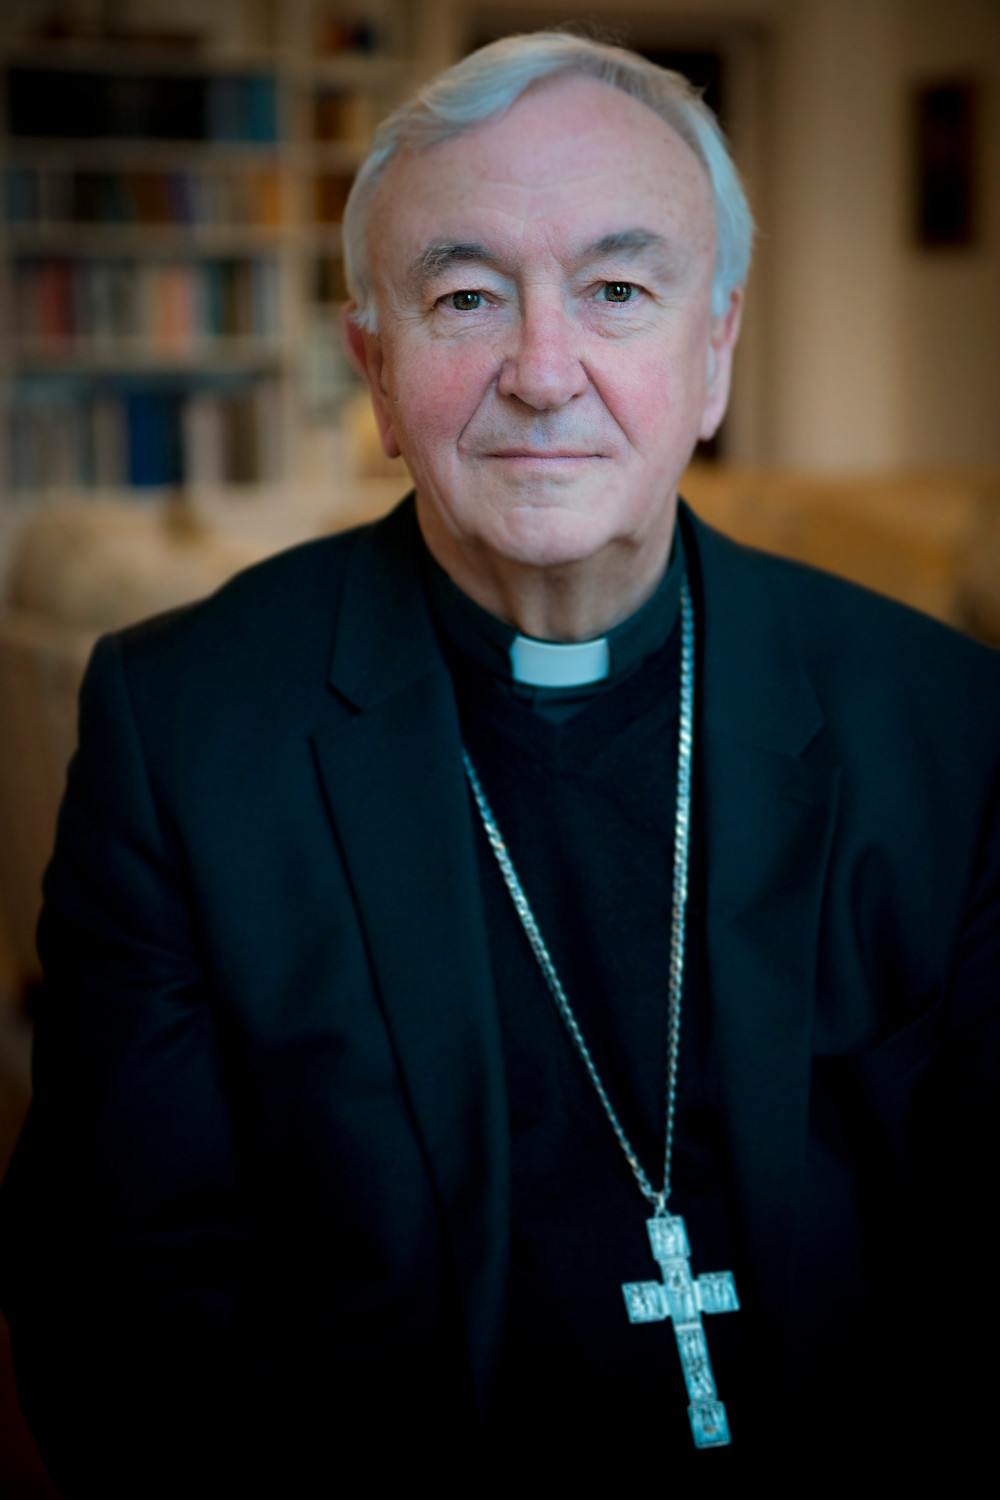 It was a great honour to visit Cardinal Vincent Nichols in his living room and take this portrait.